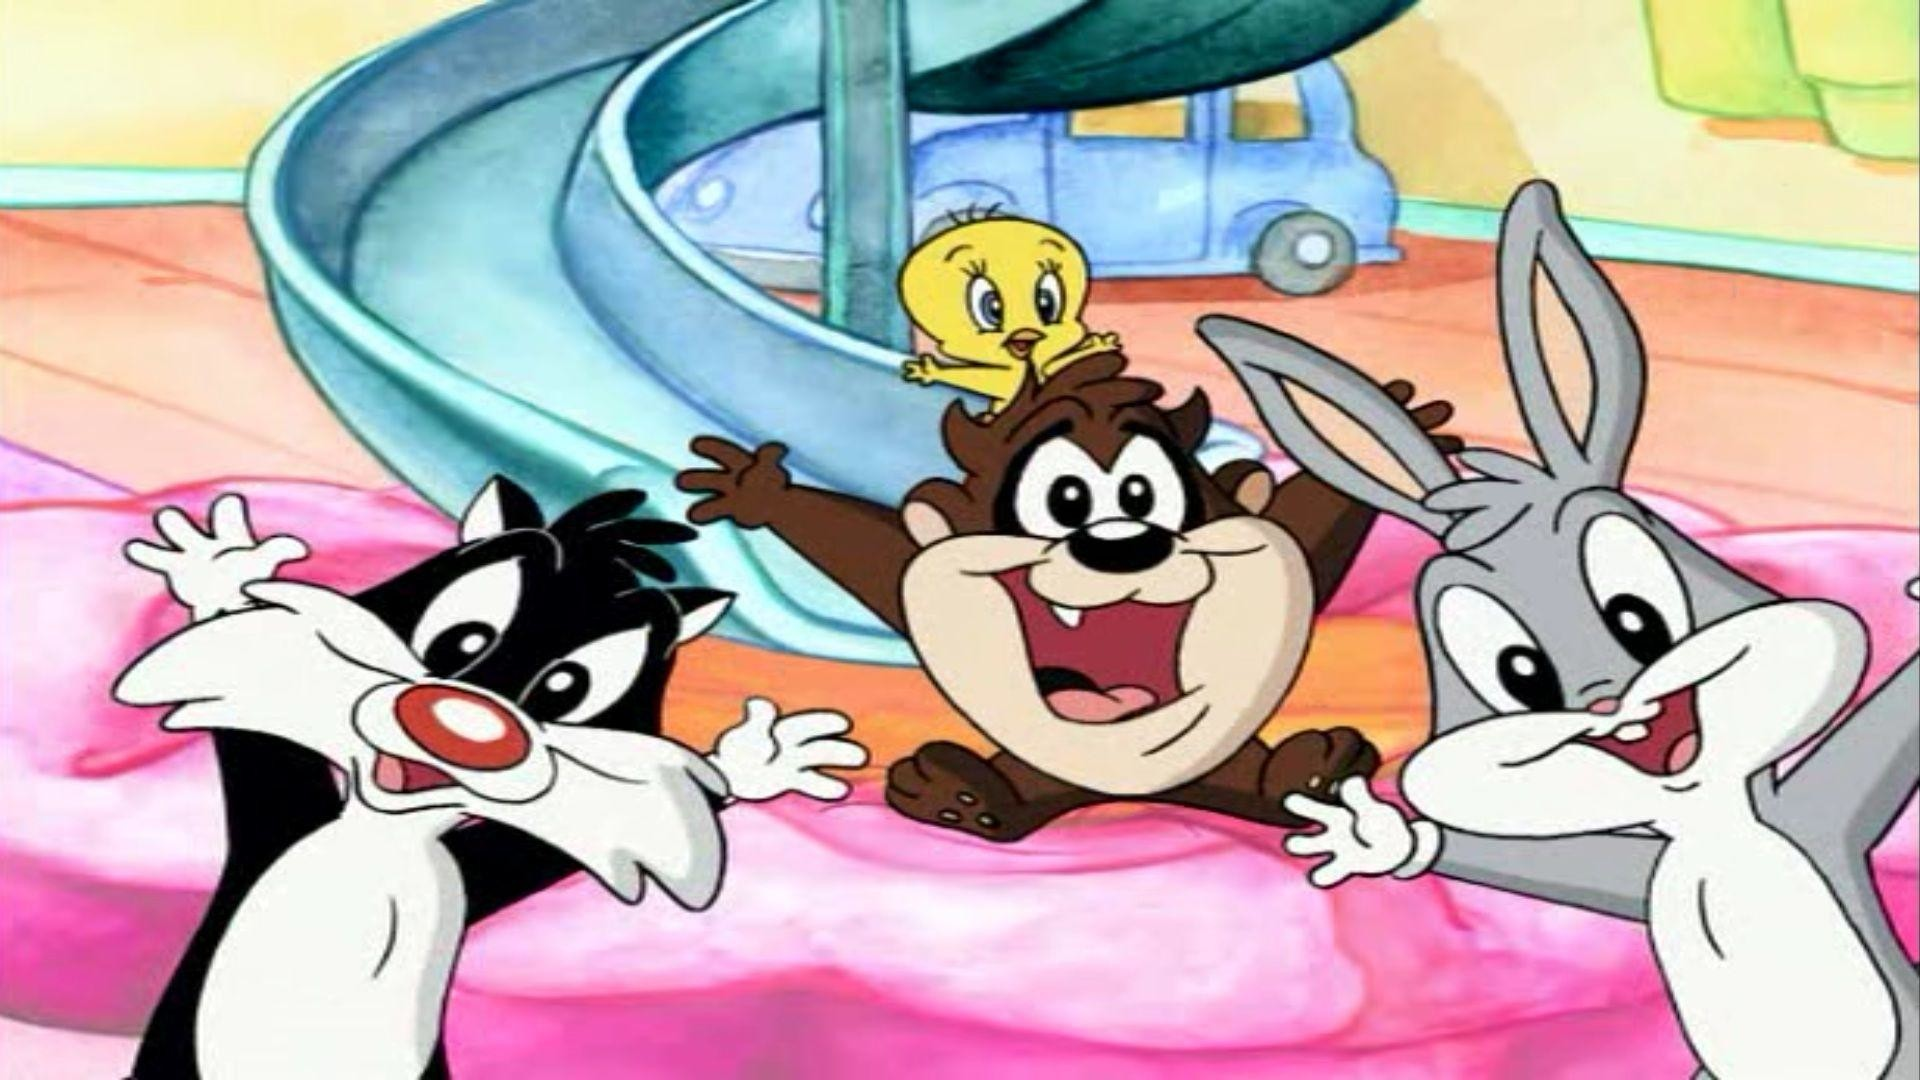 Res: 1920x1080, Baby Looney Tunes Wallpapers Wallpaper Cave